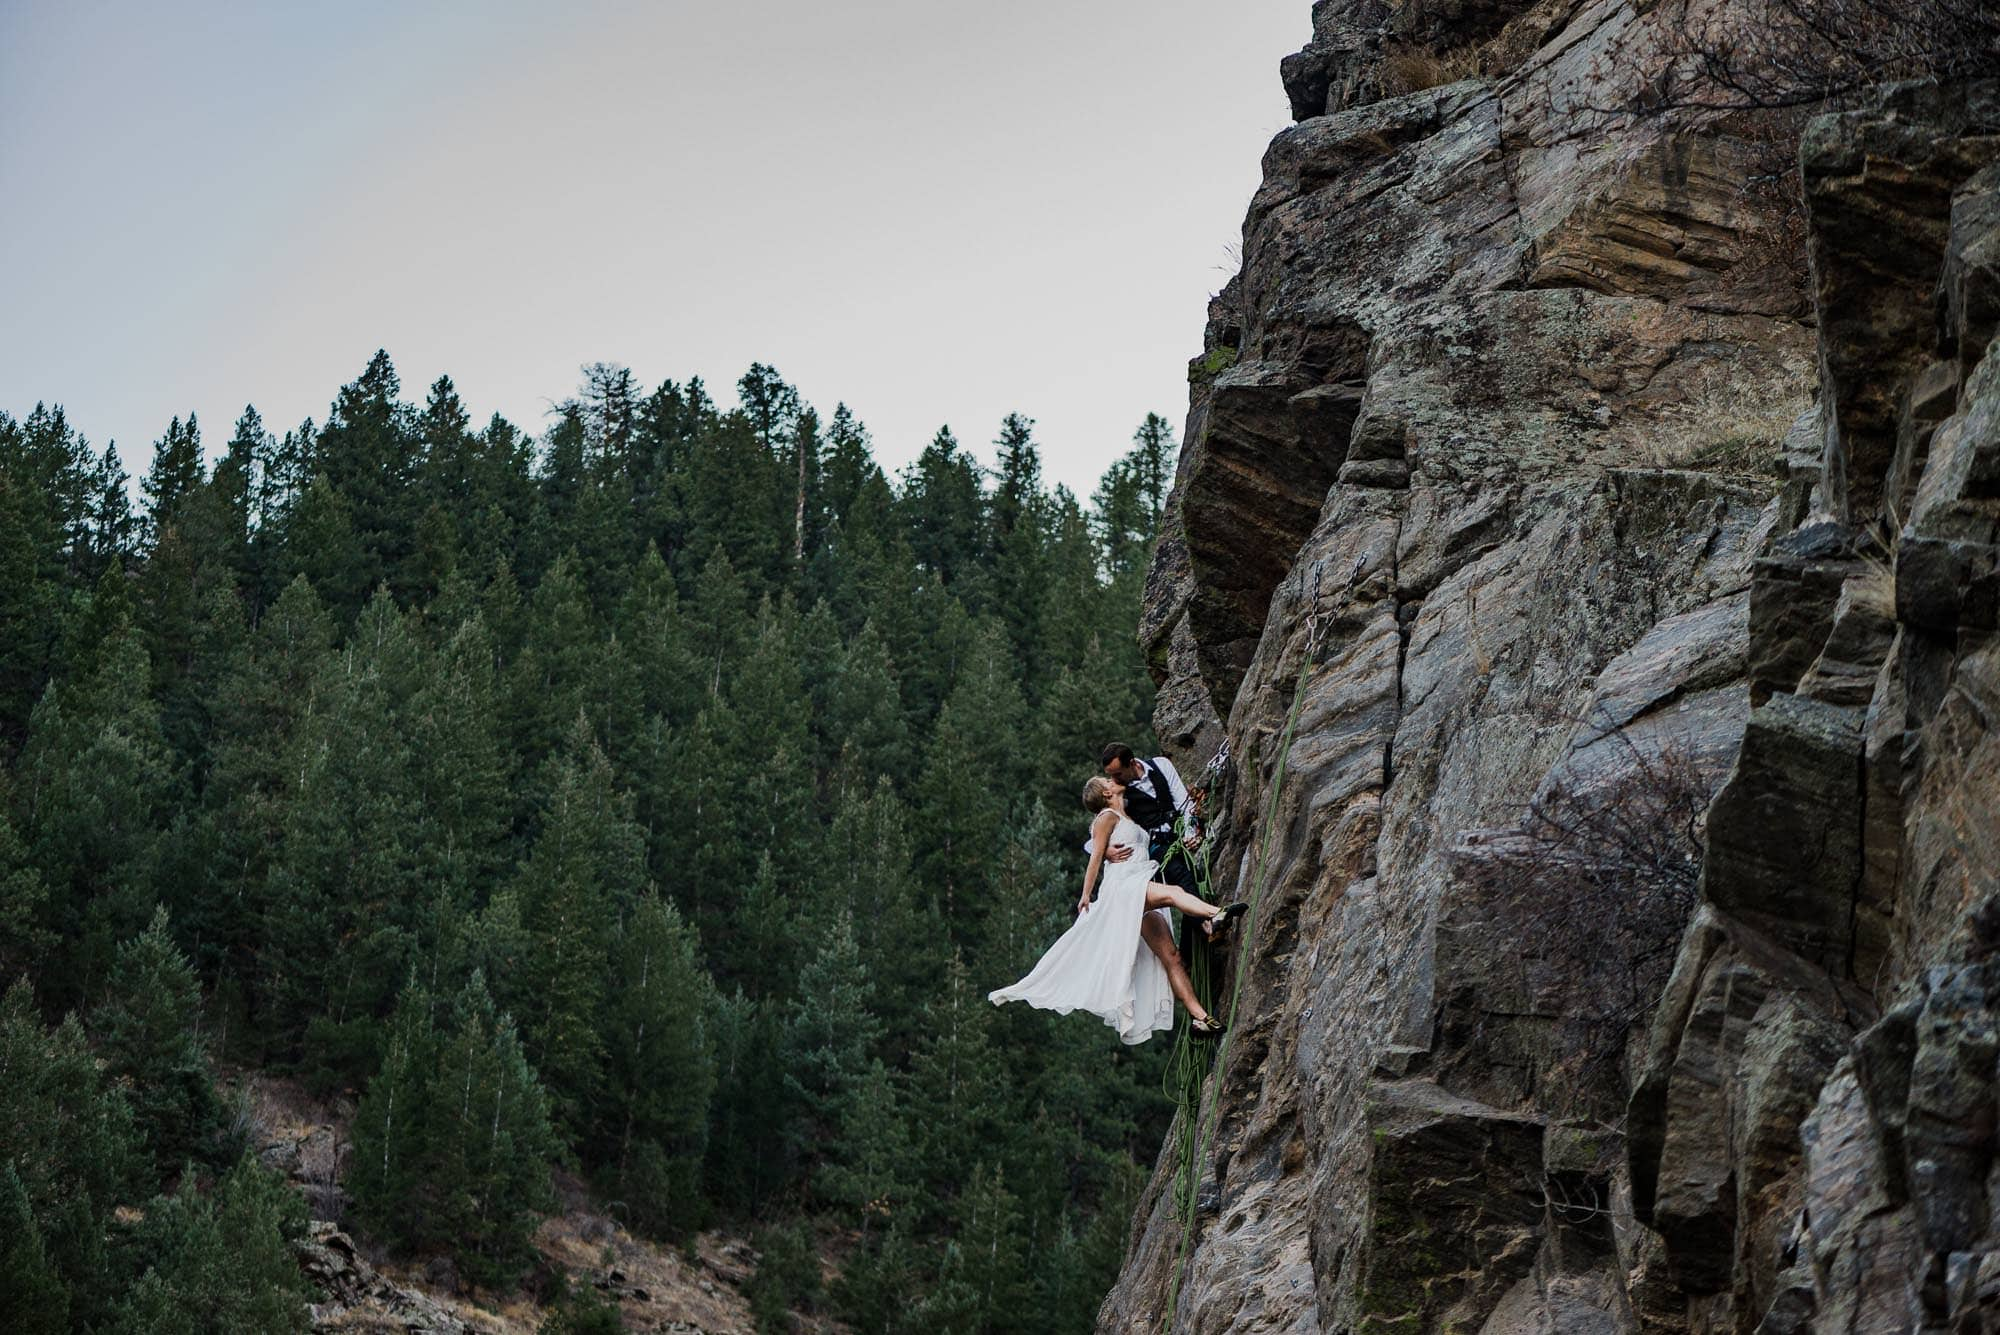 Eloping couple getting married on the side of a cliff face while rock climbing